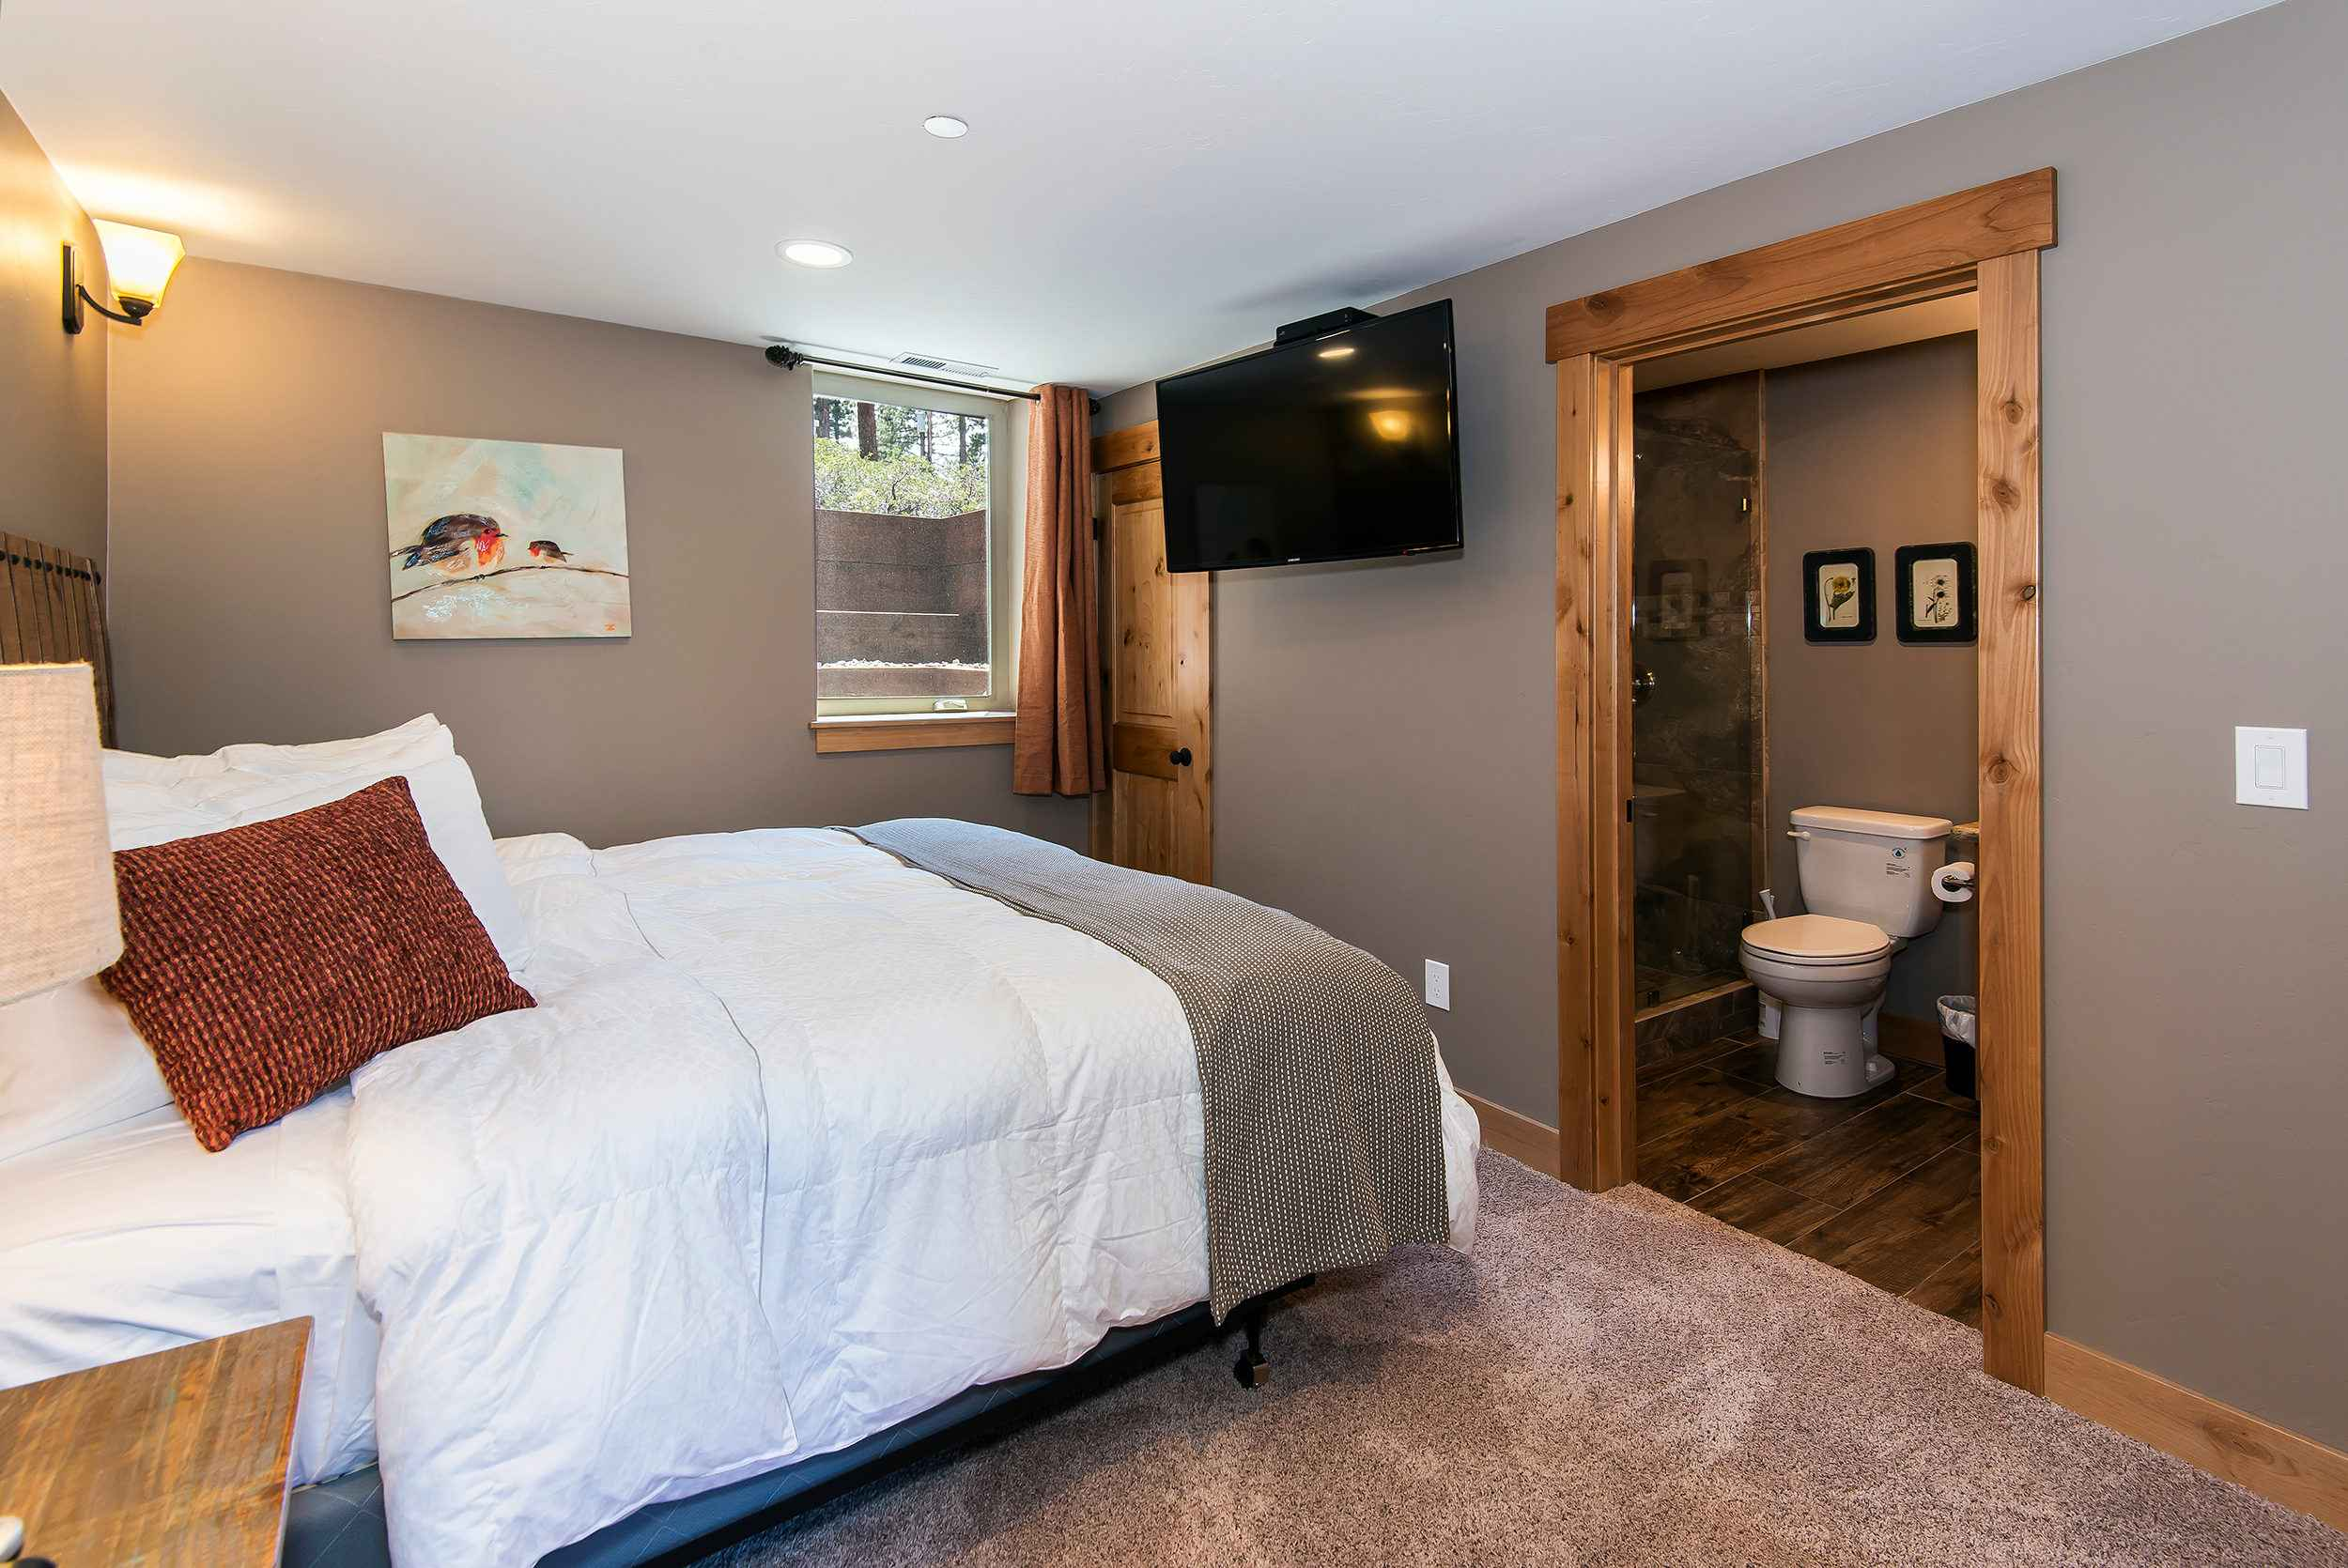 prop_3752_1432919468_7_bedroom_lakeview_luxury.jpg